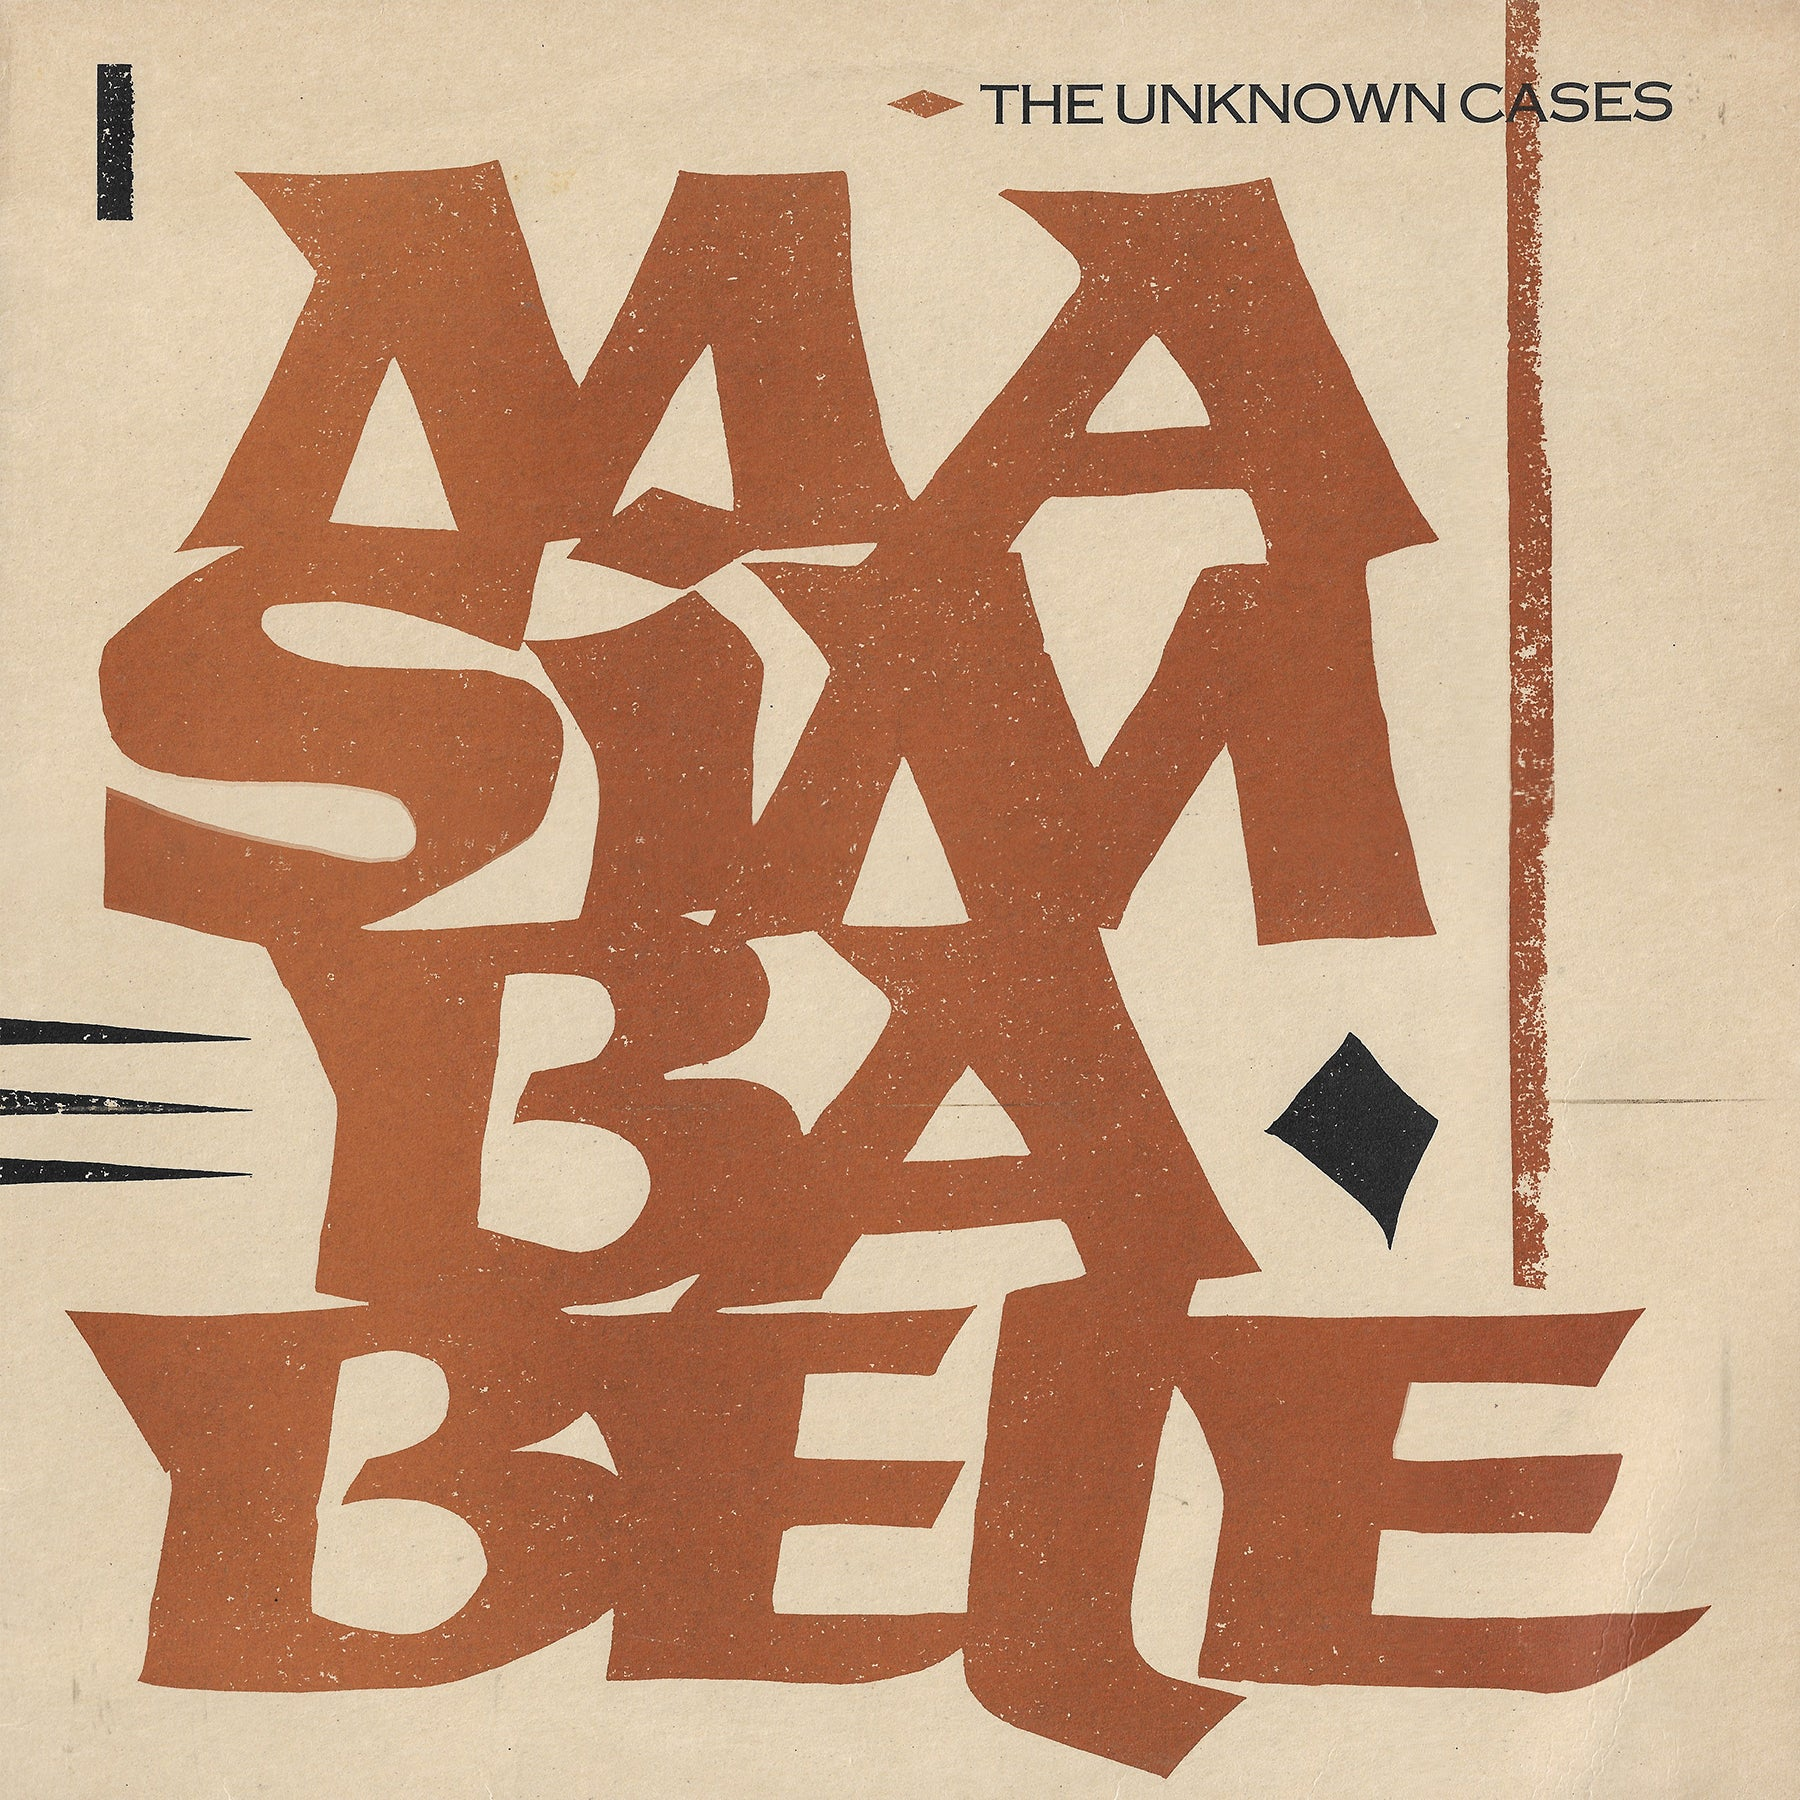 The Unknown Cases - Masimba Bele